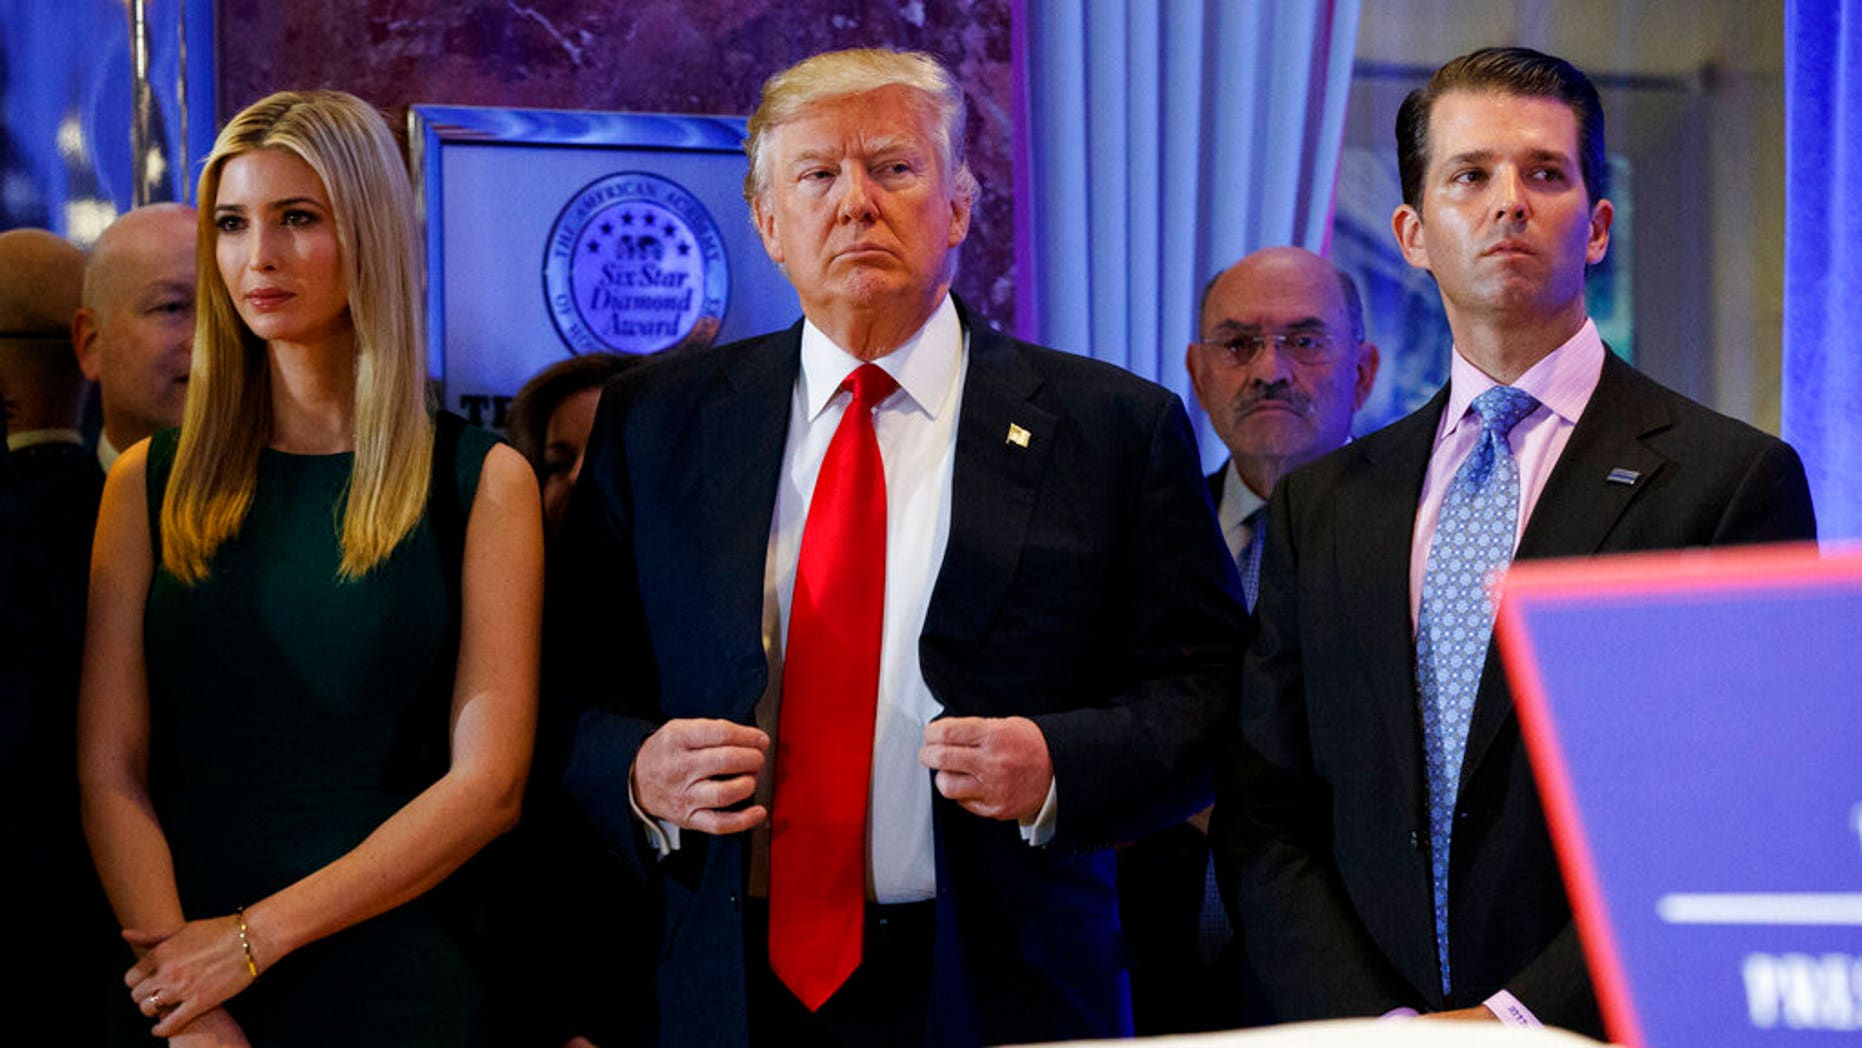 FILE: President-elect Donald Trump, center, stands next to Allen Weisselberg, second from left, Donald Trump Jr., right and Ivanka Trump, left, at a news conference in the lobby of Trump Tower in New York.